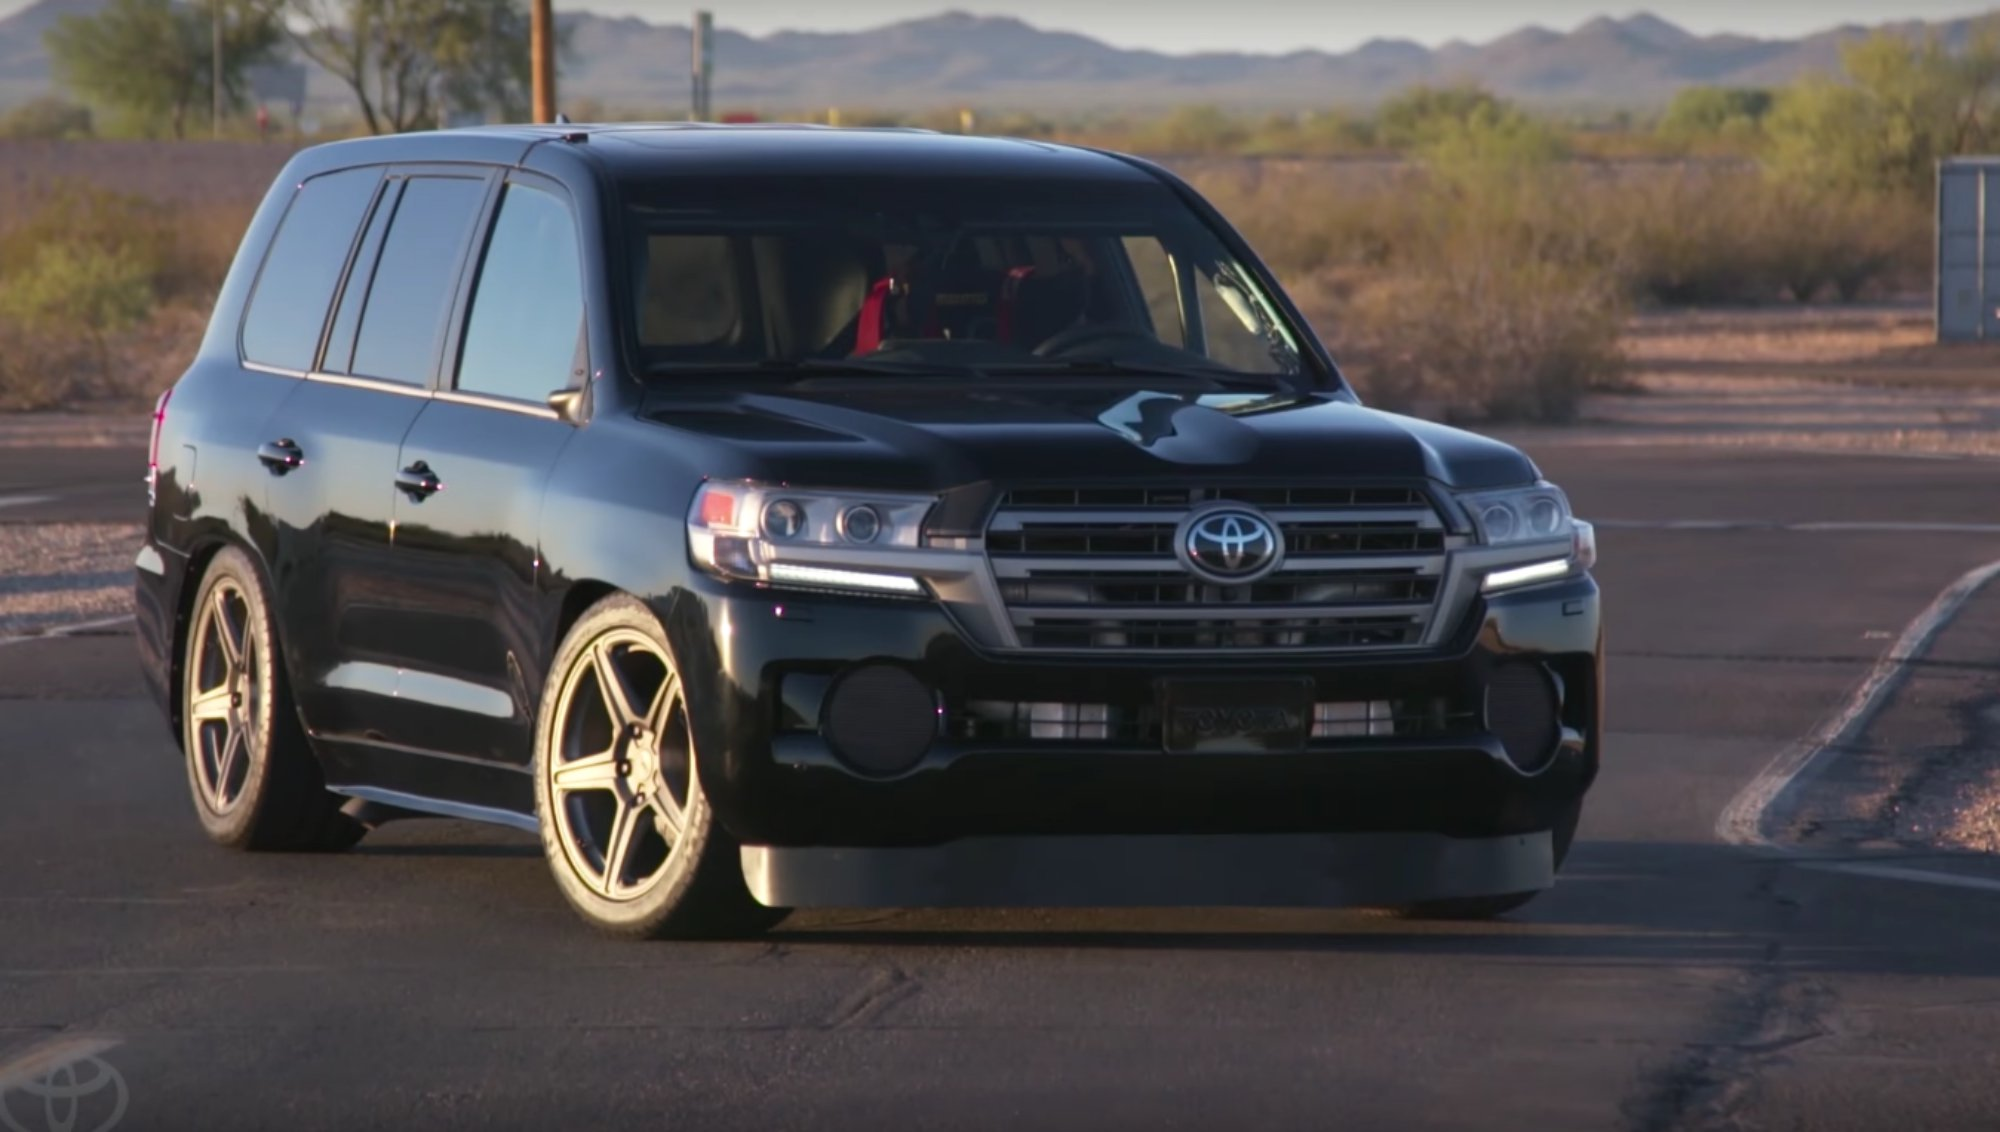 Worlds Fastest Car >> News - Toyota Land Cruiser, The World's Fastest SUV?